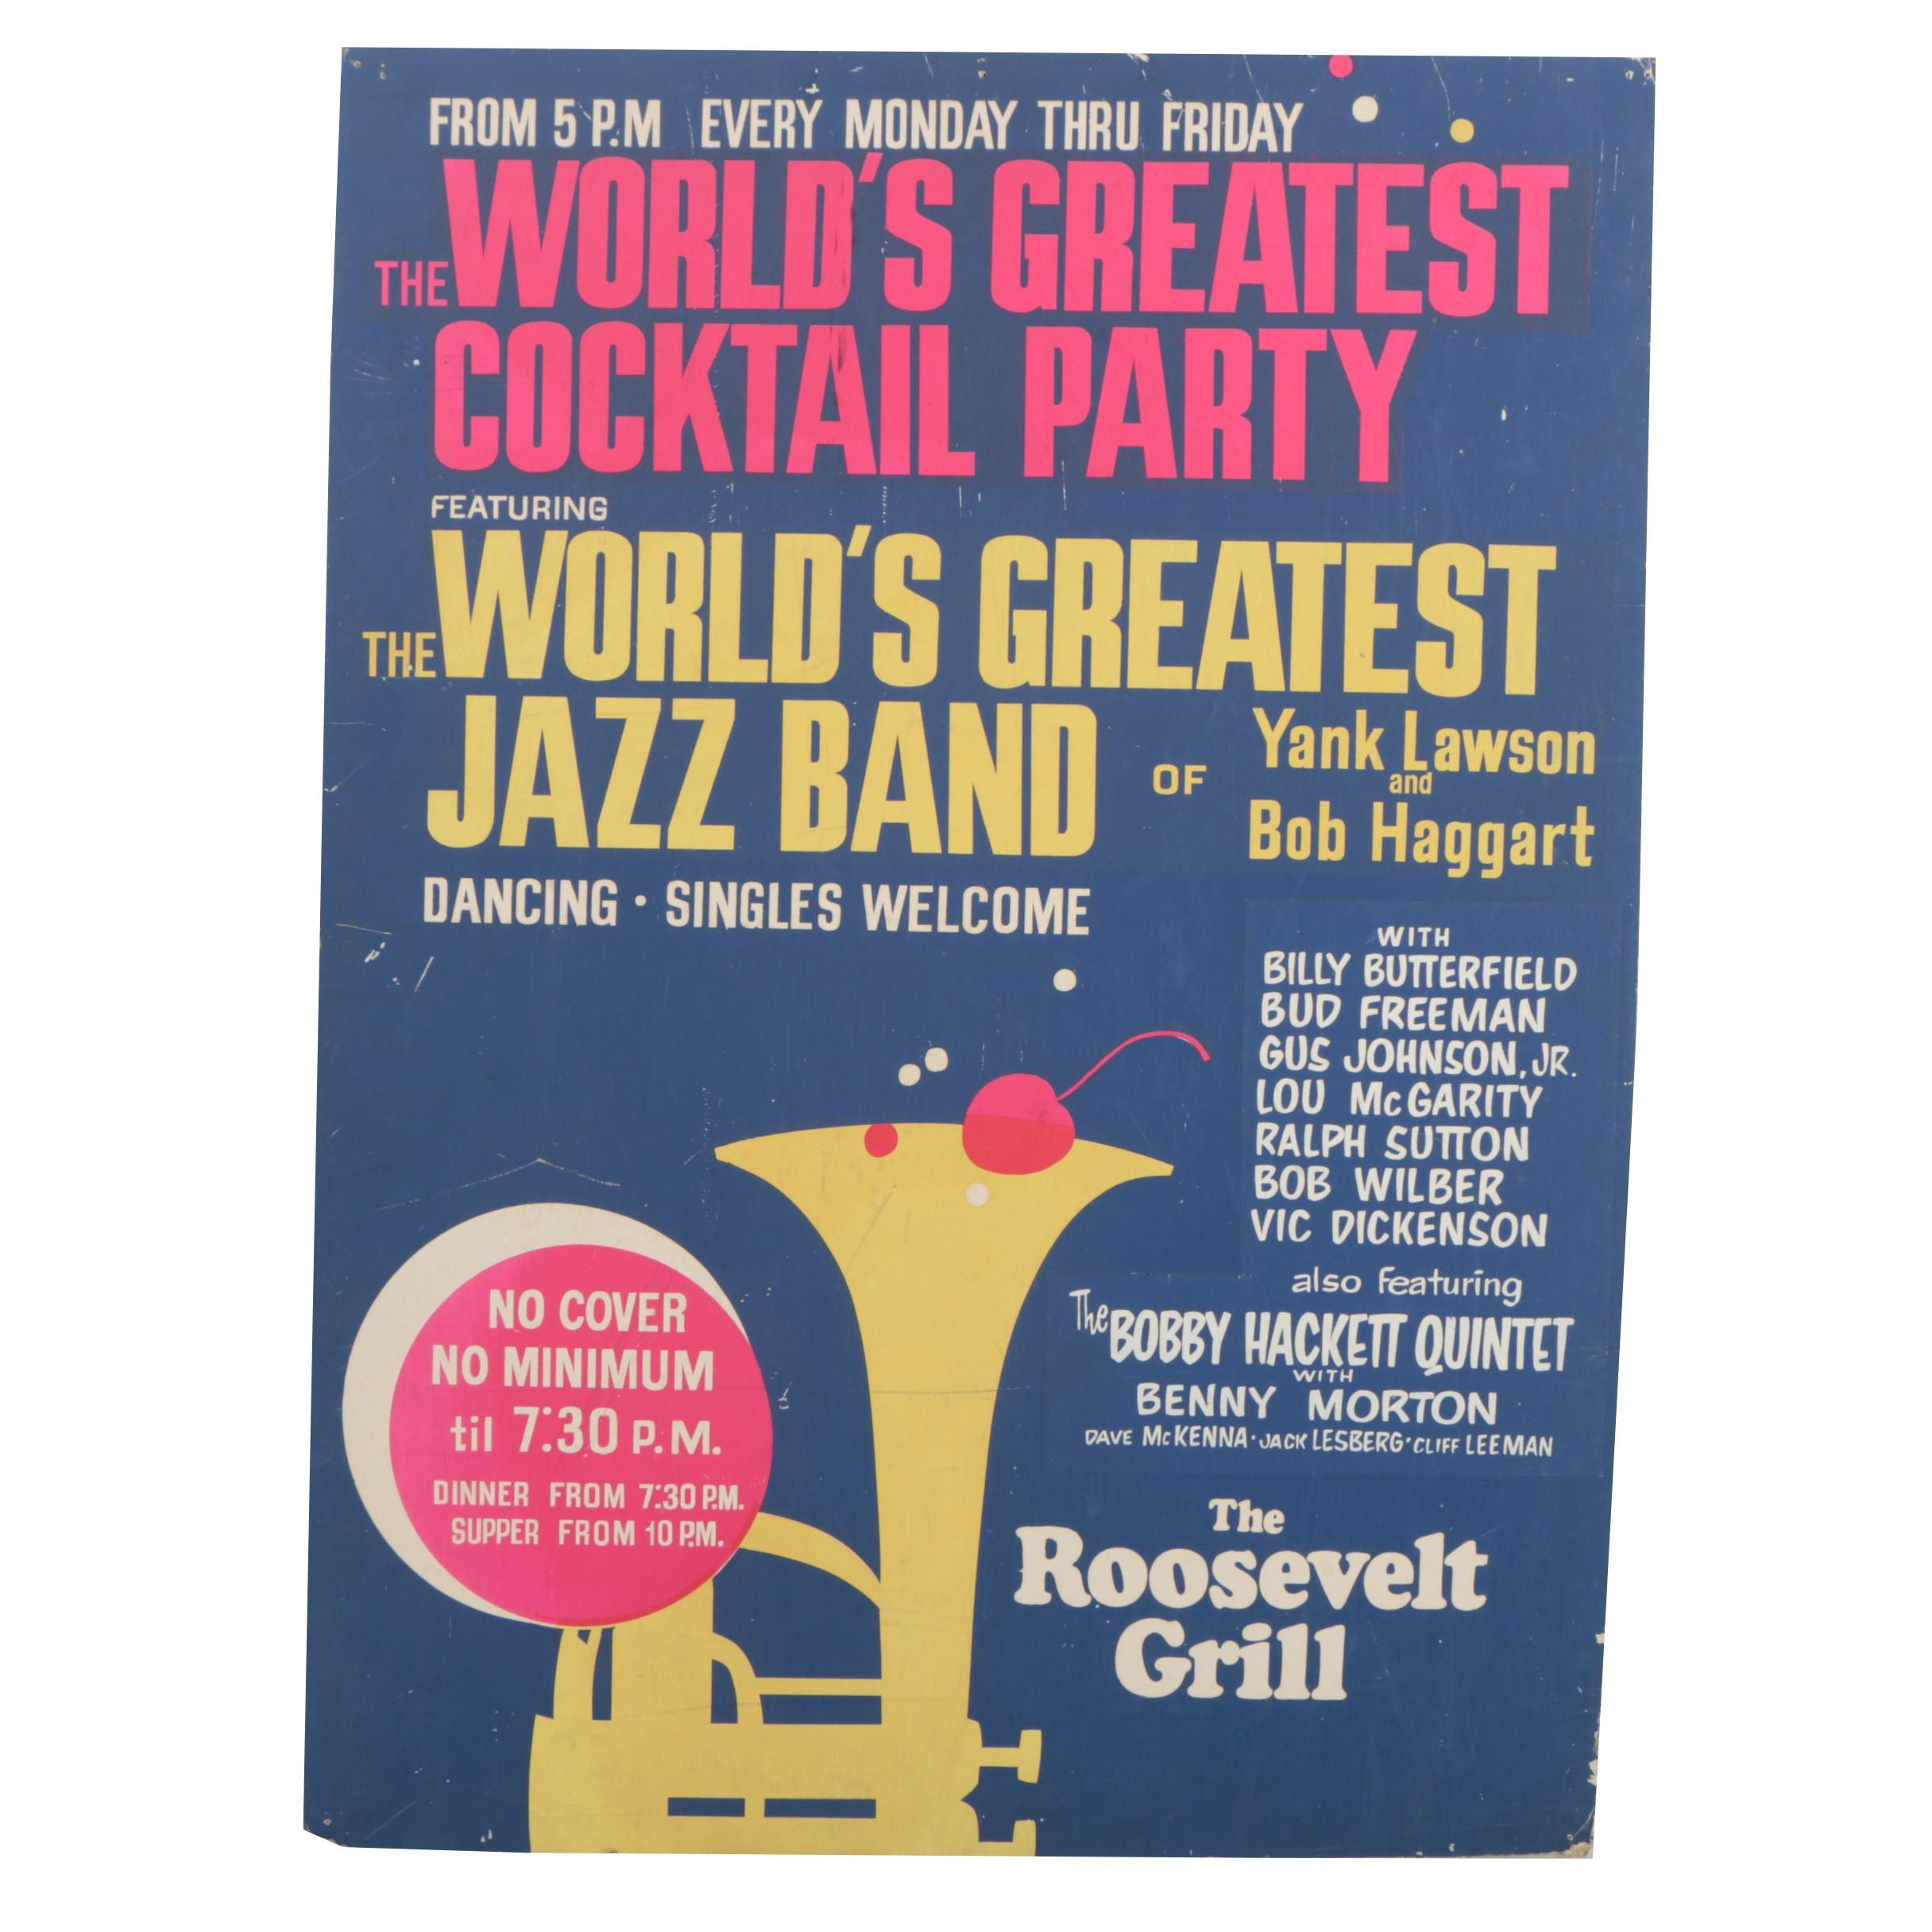 Vintage Serigraph Cocktail Party and Jazz Poster